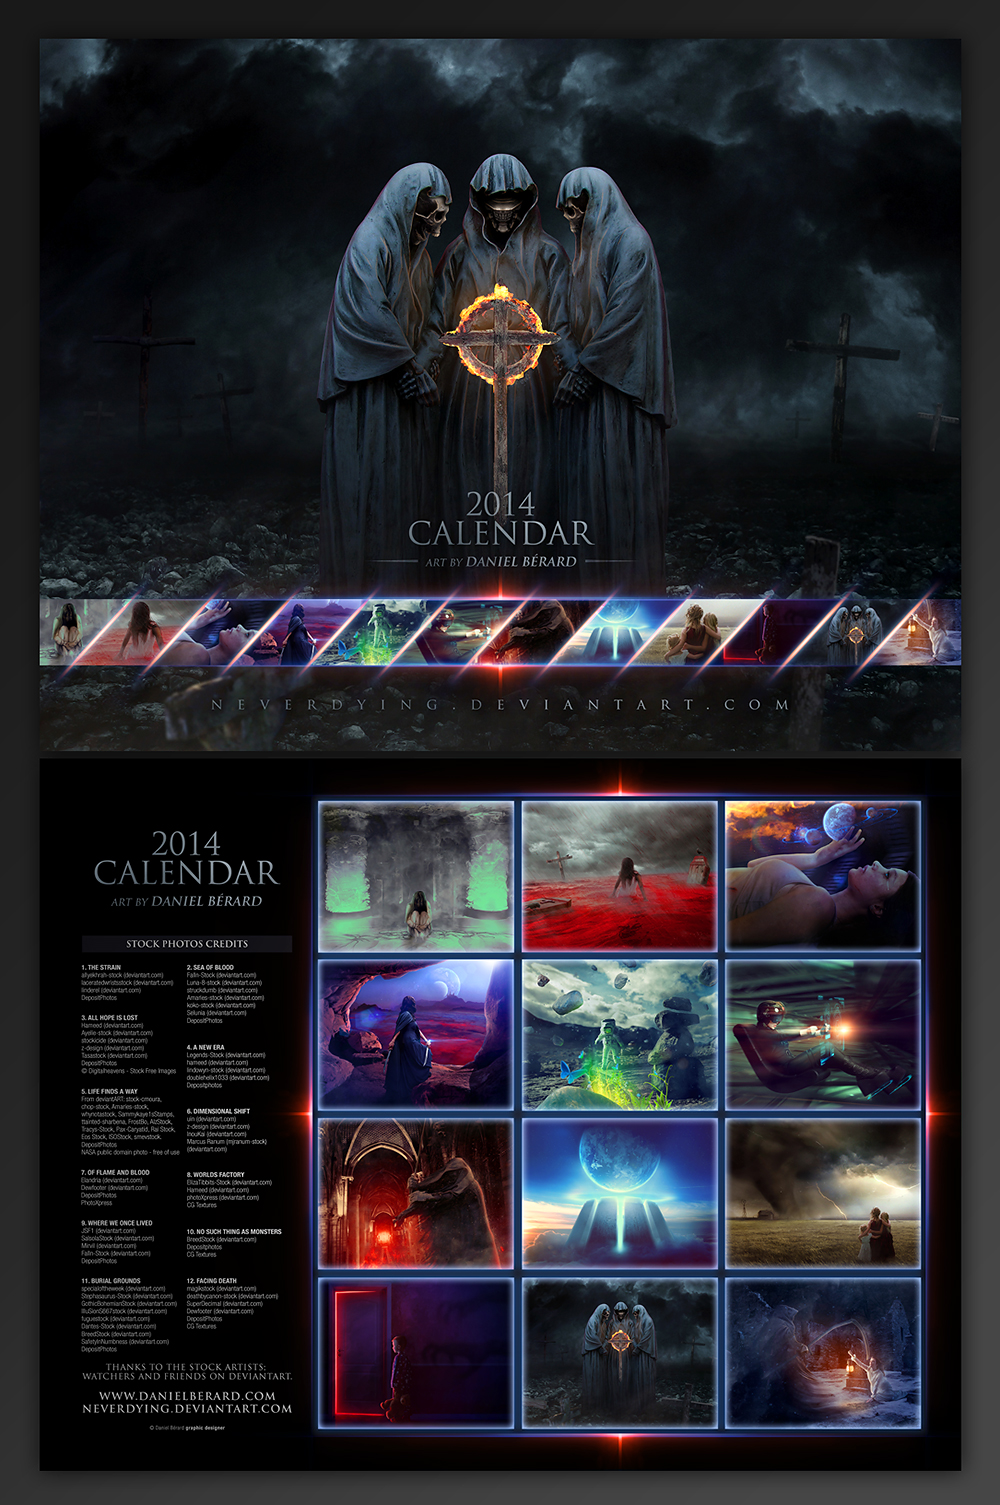 2014 Calendar * Now Available * by neverdying